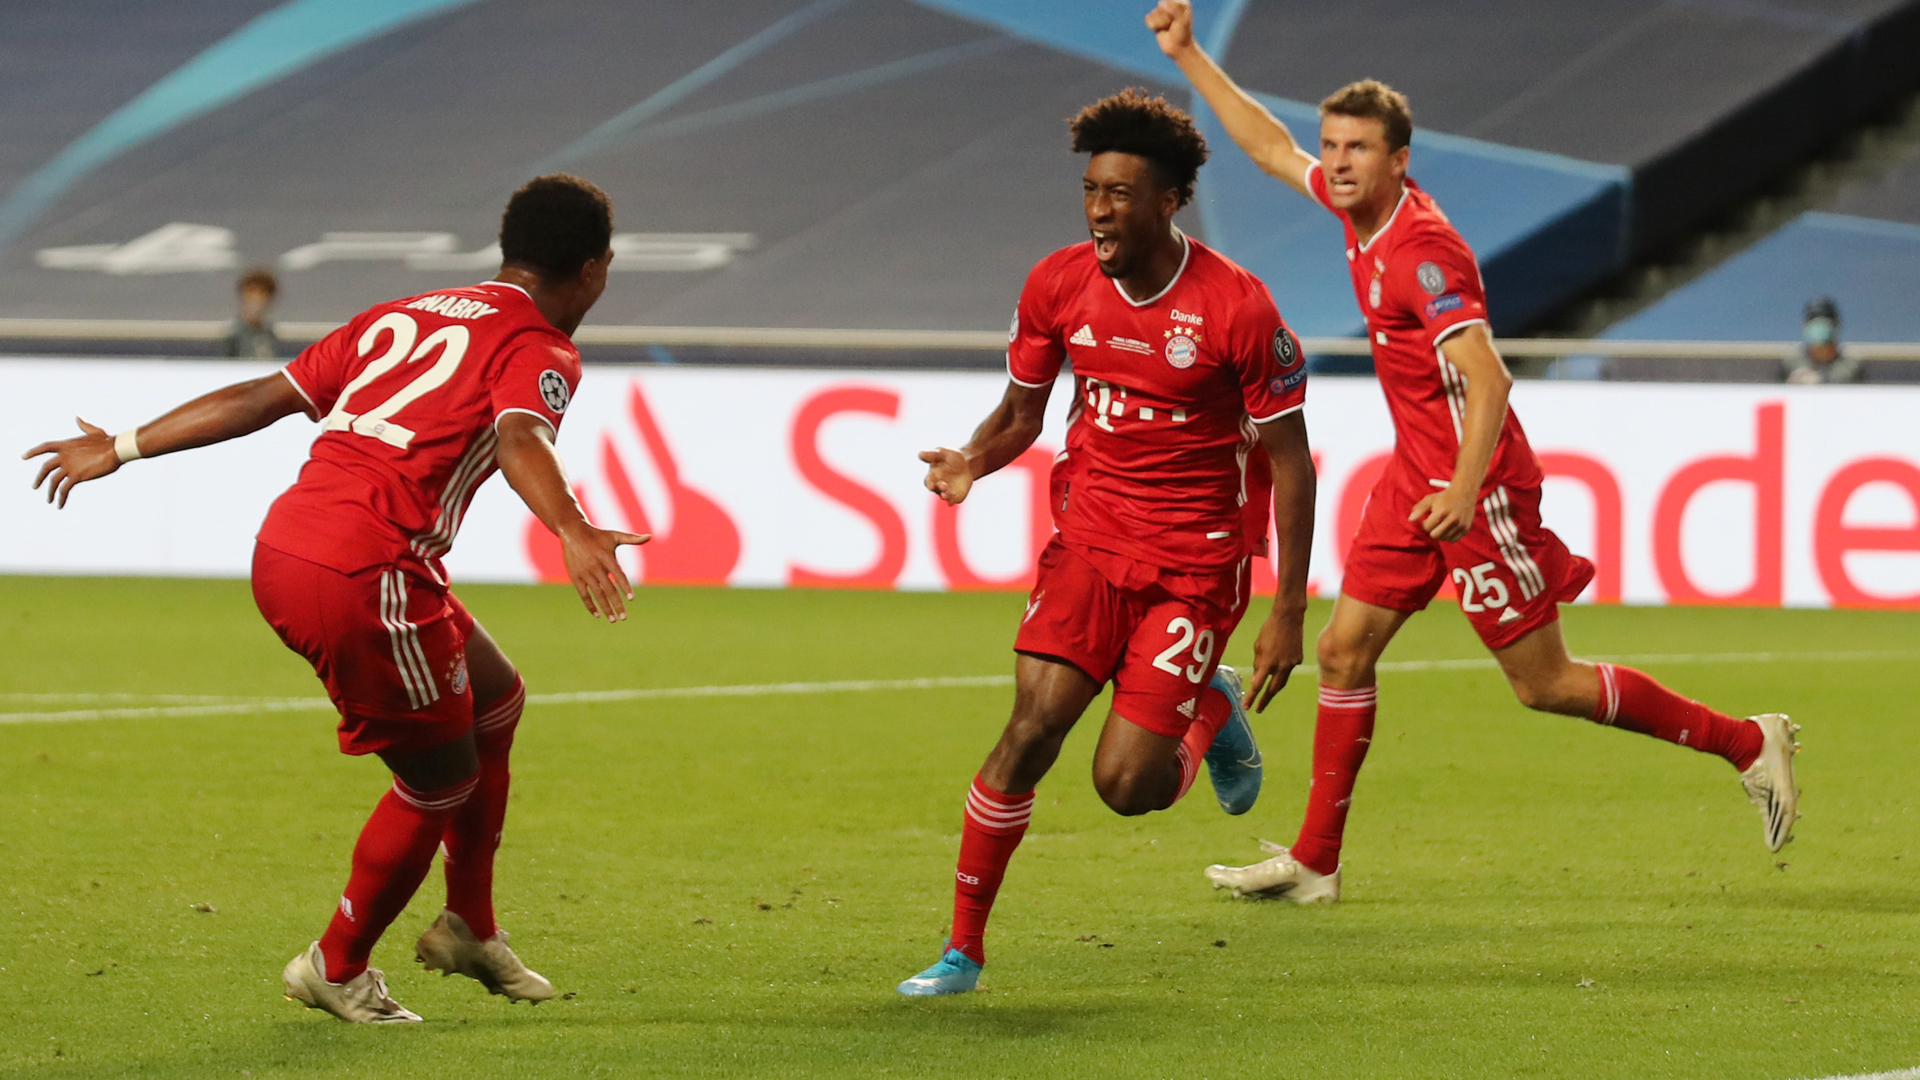 Psg Vs Bayern Results Kingsley Coman Heads German Side To Champions League Final Win Sporting News